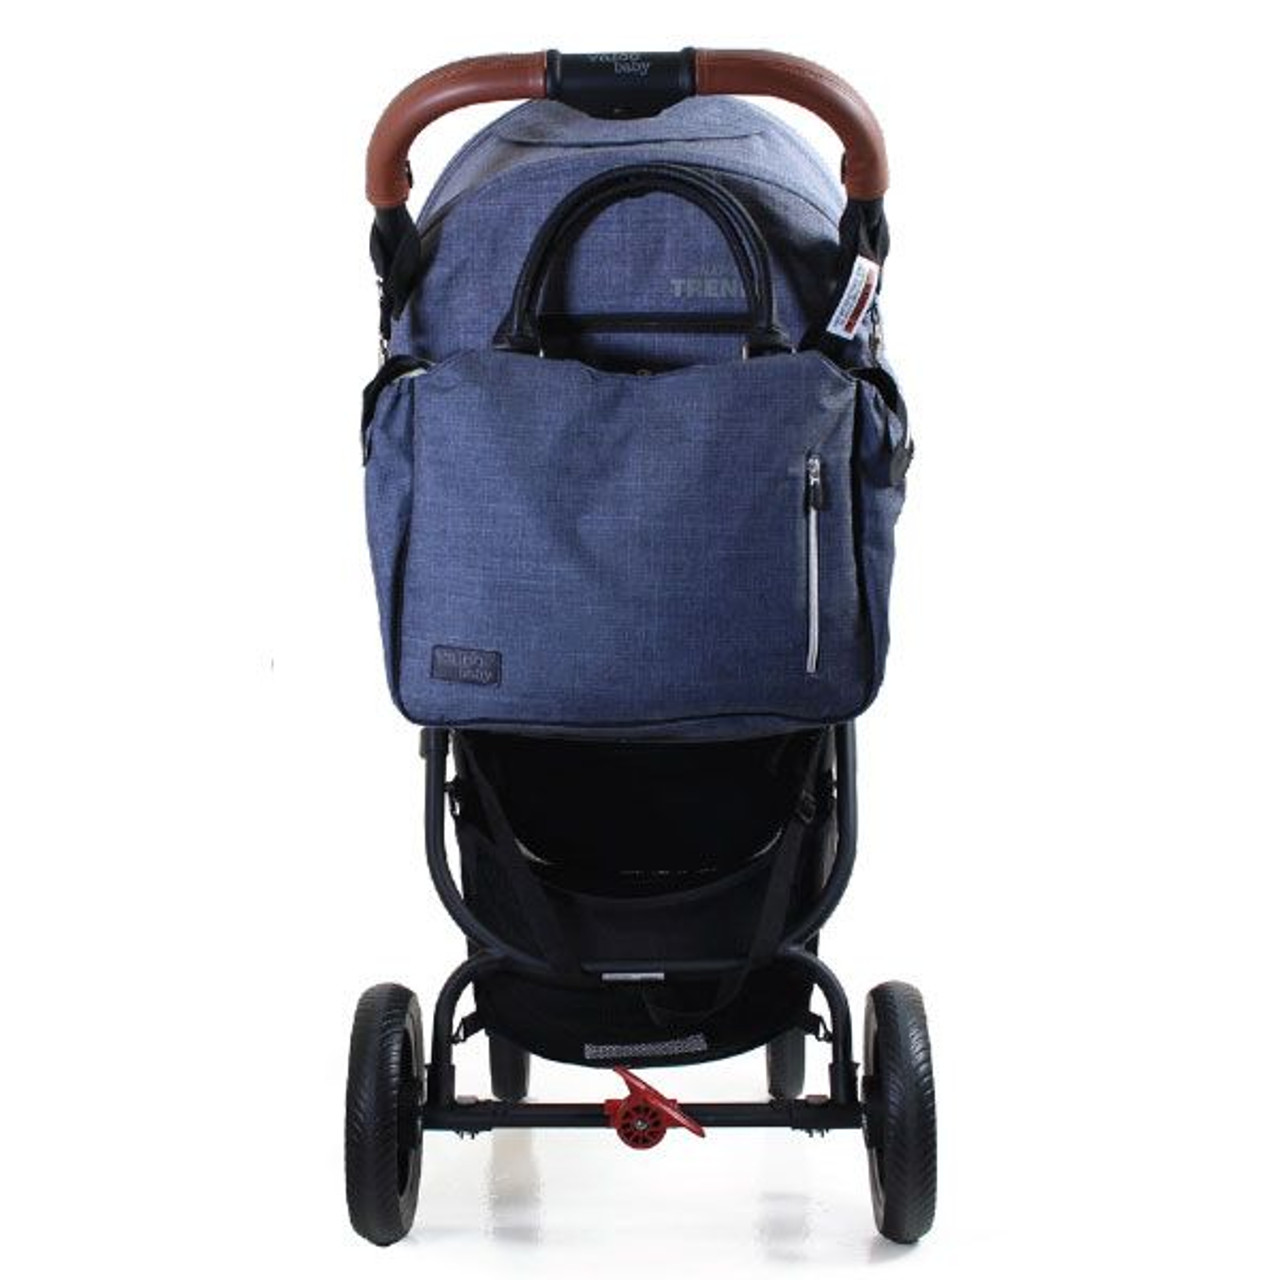 Valco Baby Mothers/ Nappy Bag